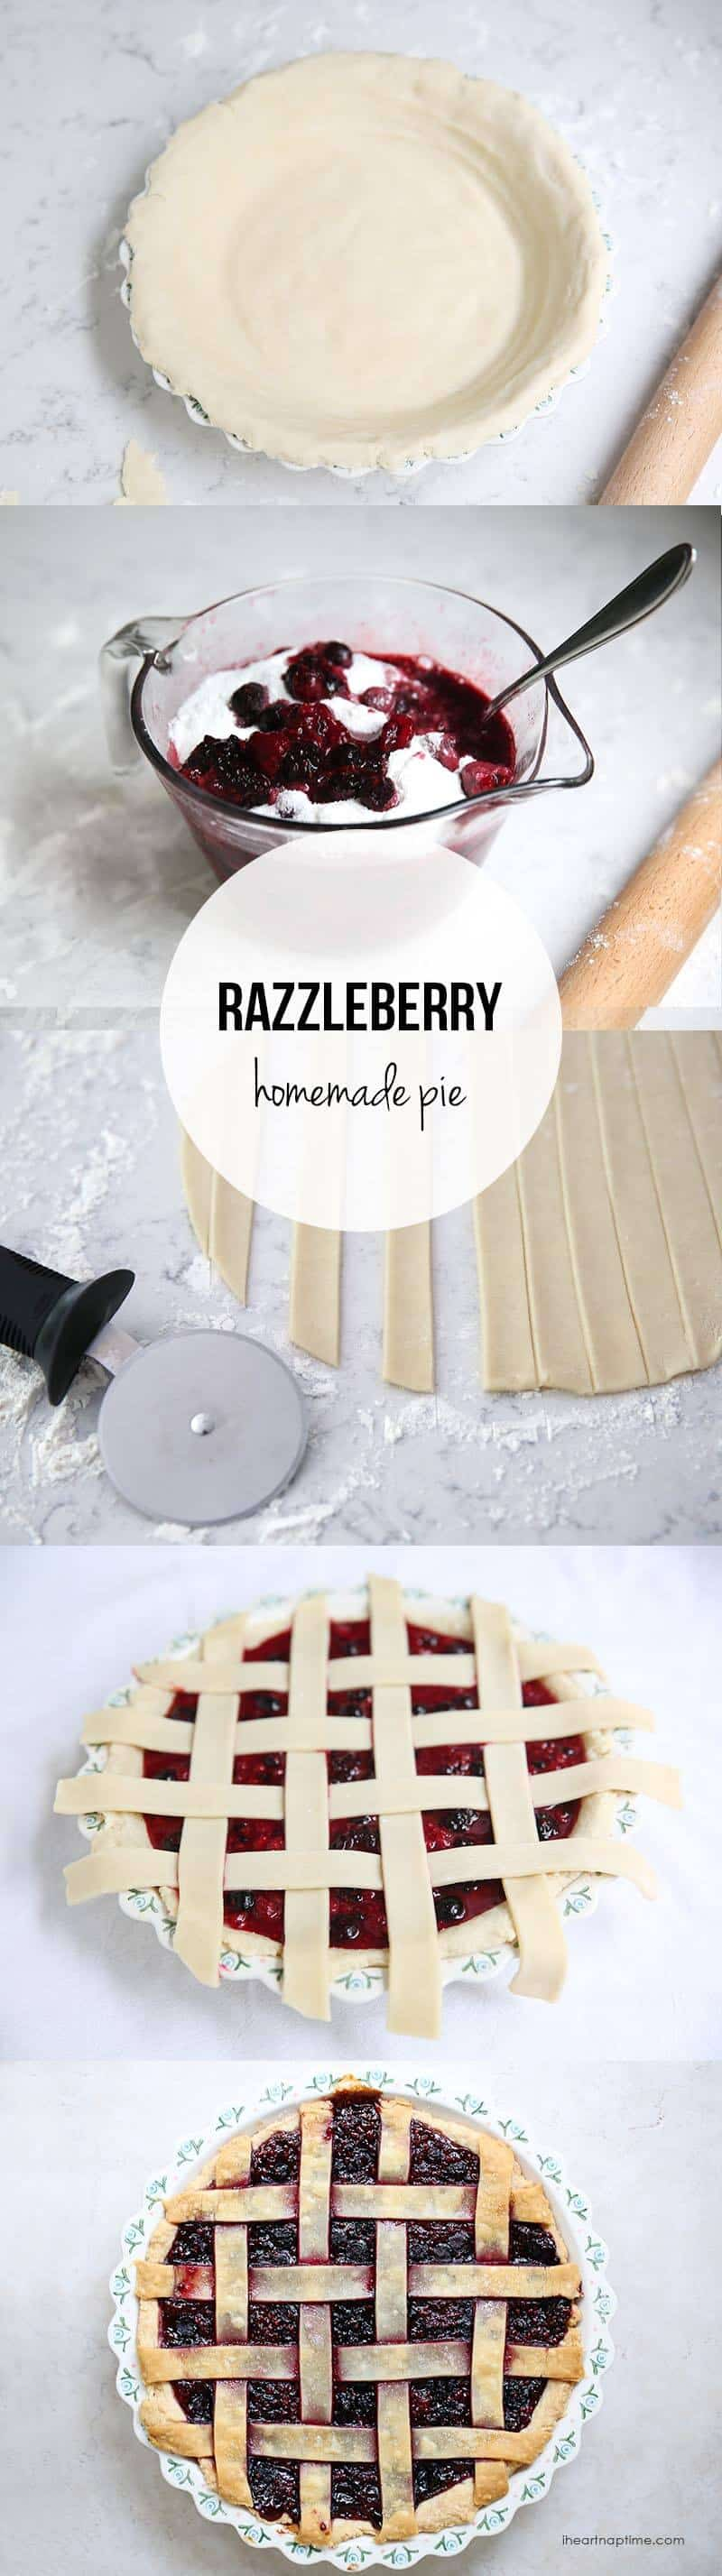 Razzleberry homemade pie